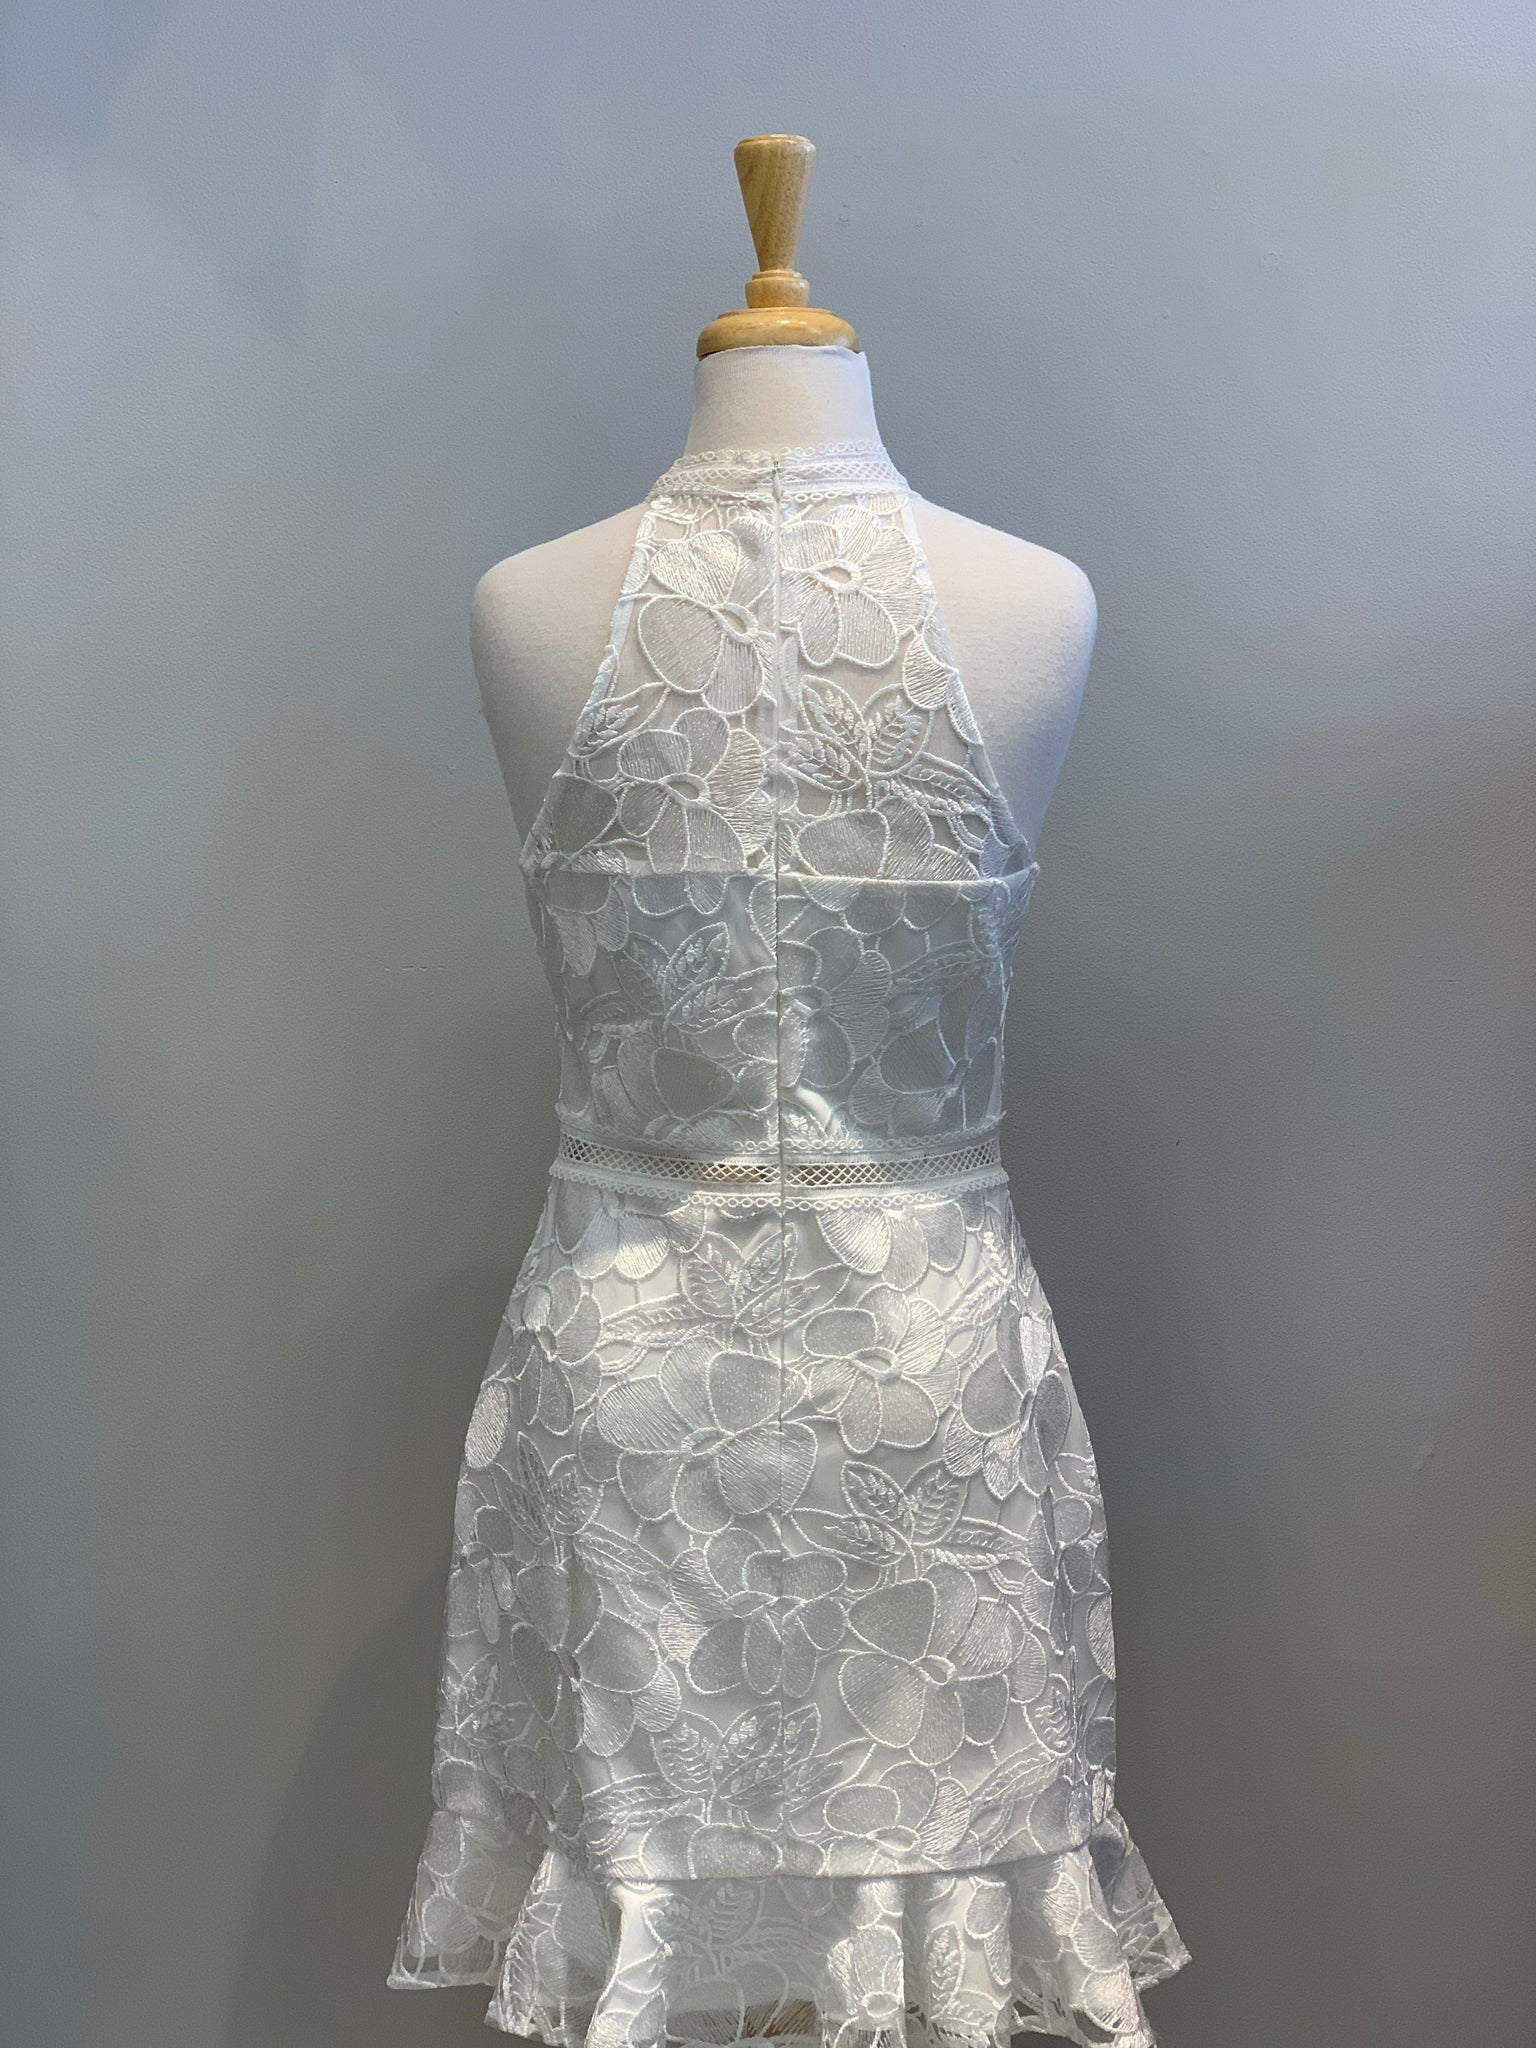 Two Sisters Lilo Lace Dress - Showroom56